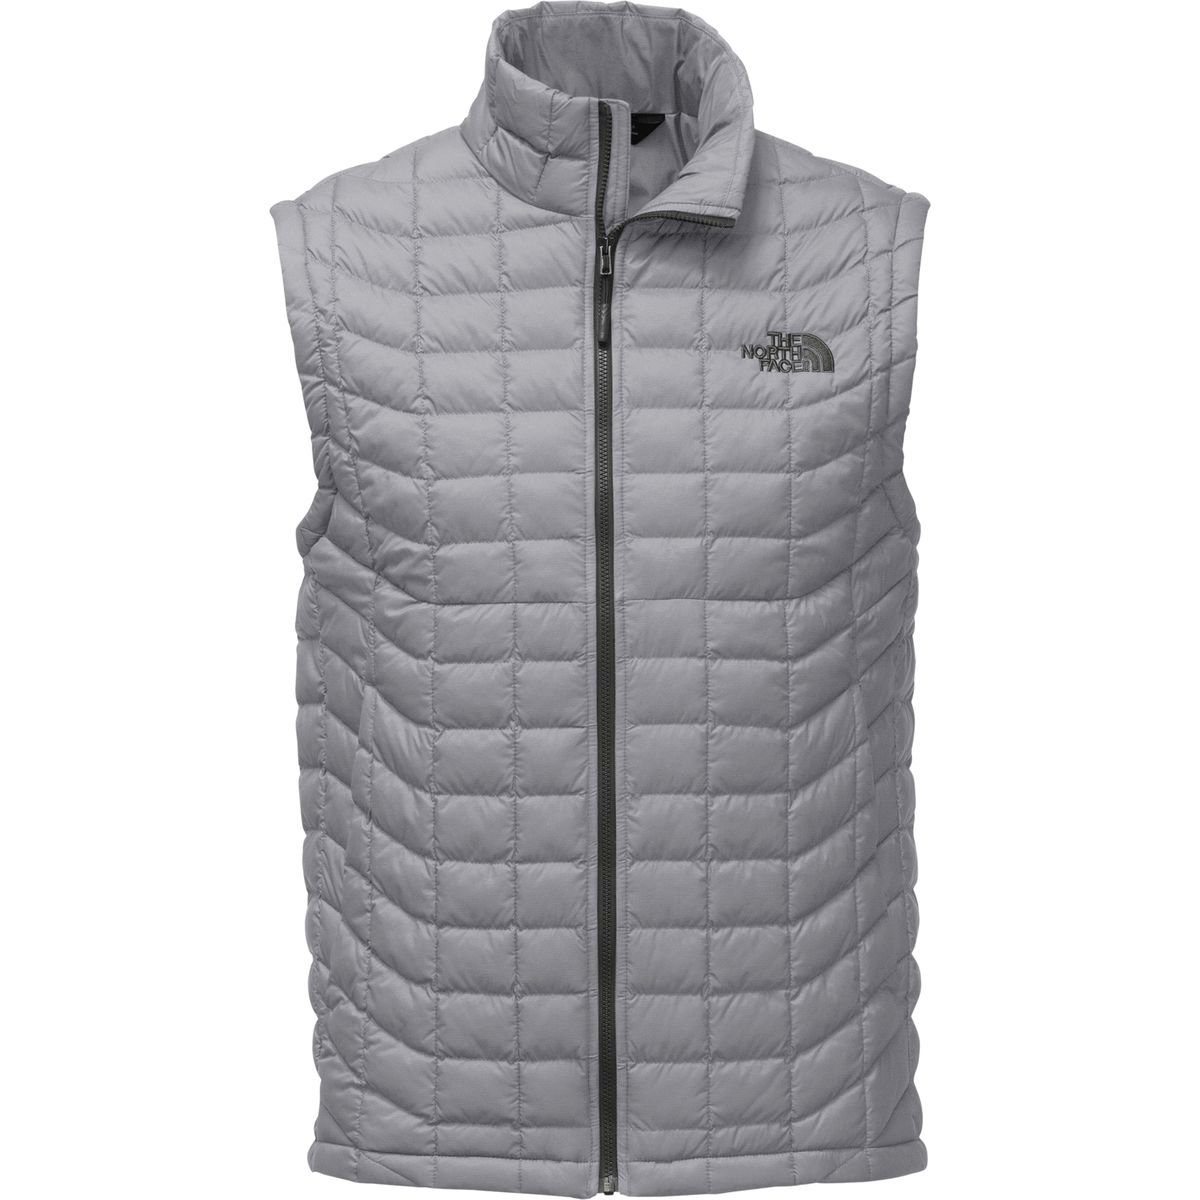 The North Face Men's Thermoball Vest Monument Grey Matte (Medium) by The North Face